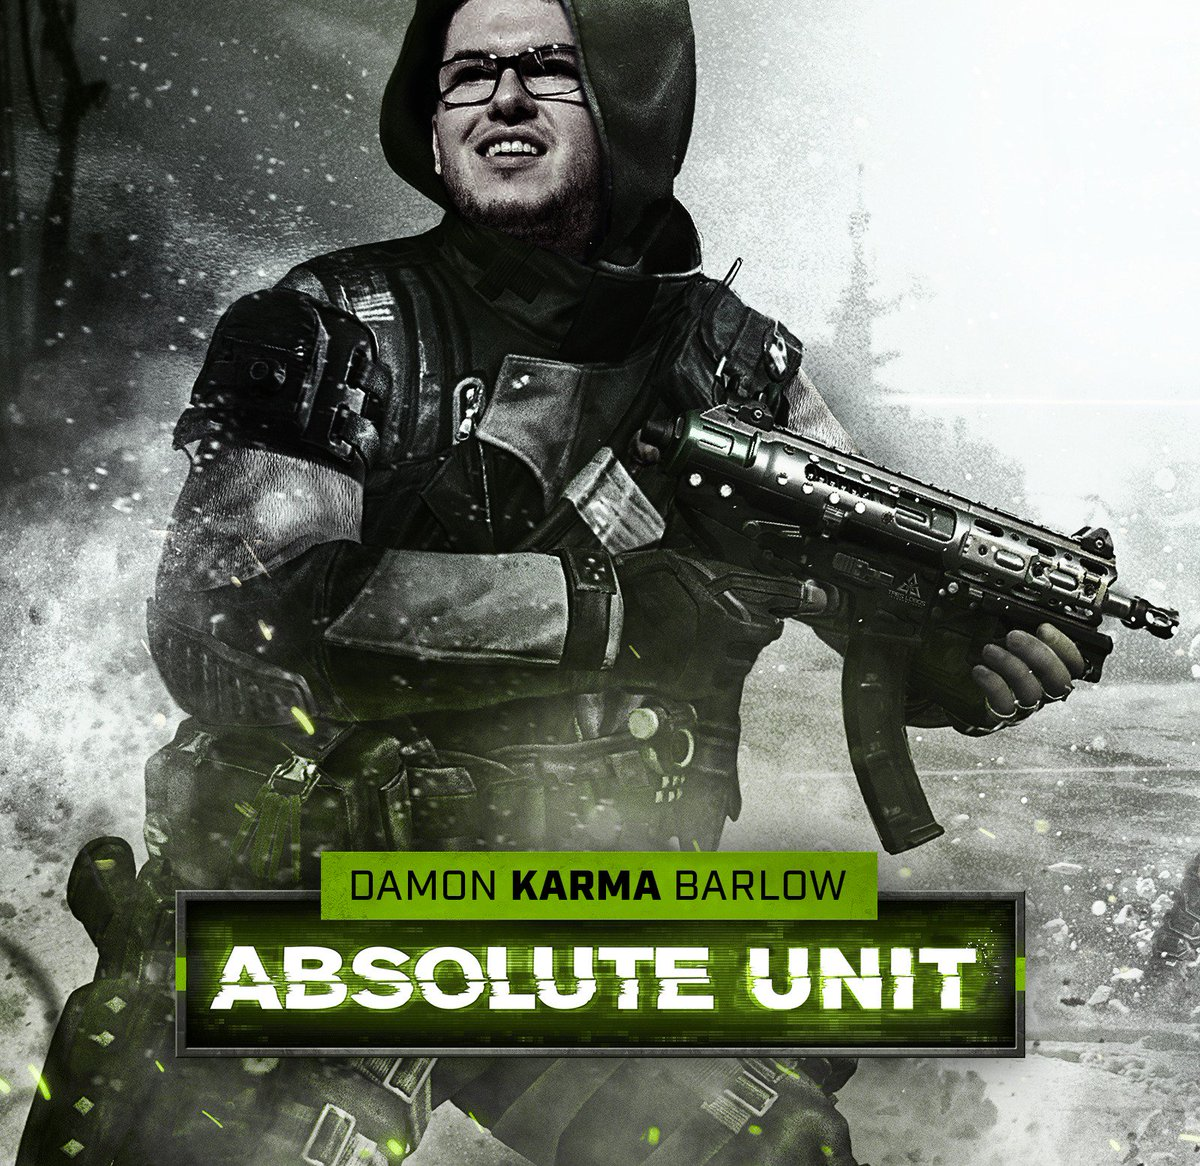 Operation Absolute Zero? @Treyarch  Daemon 3XB? @OpTic_DKarma   We see what you're getting at @CallofDuty.